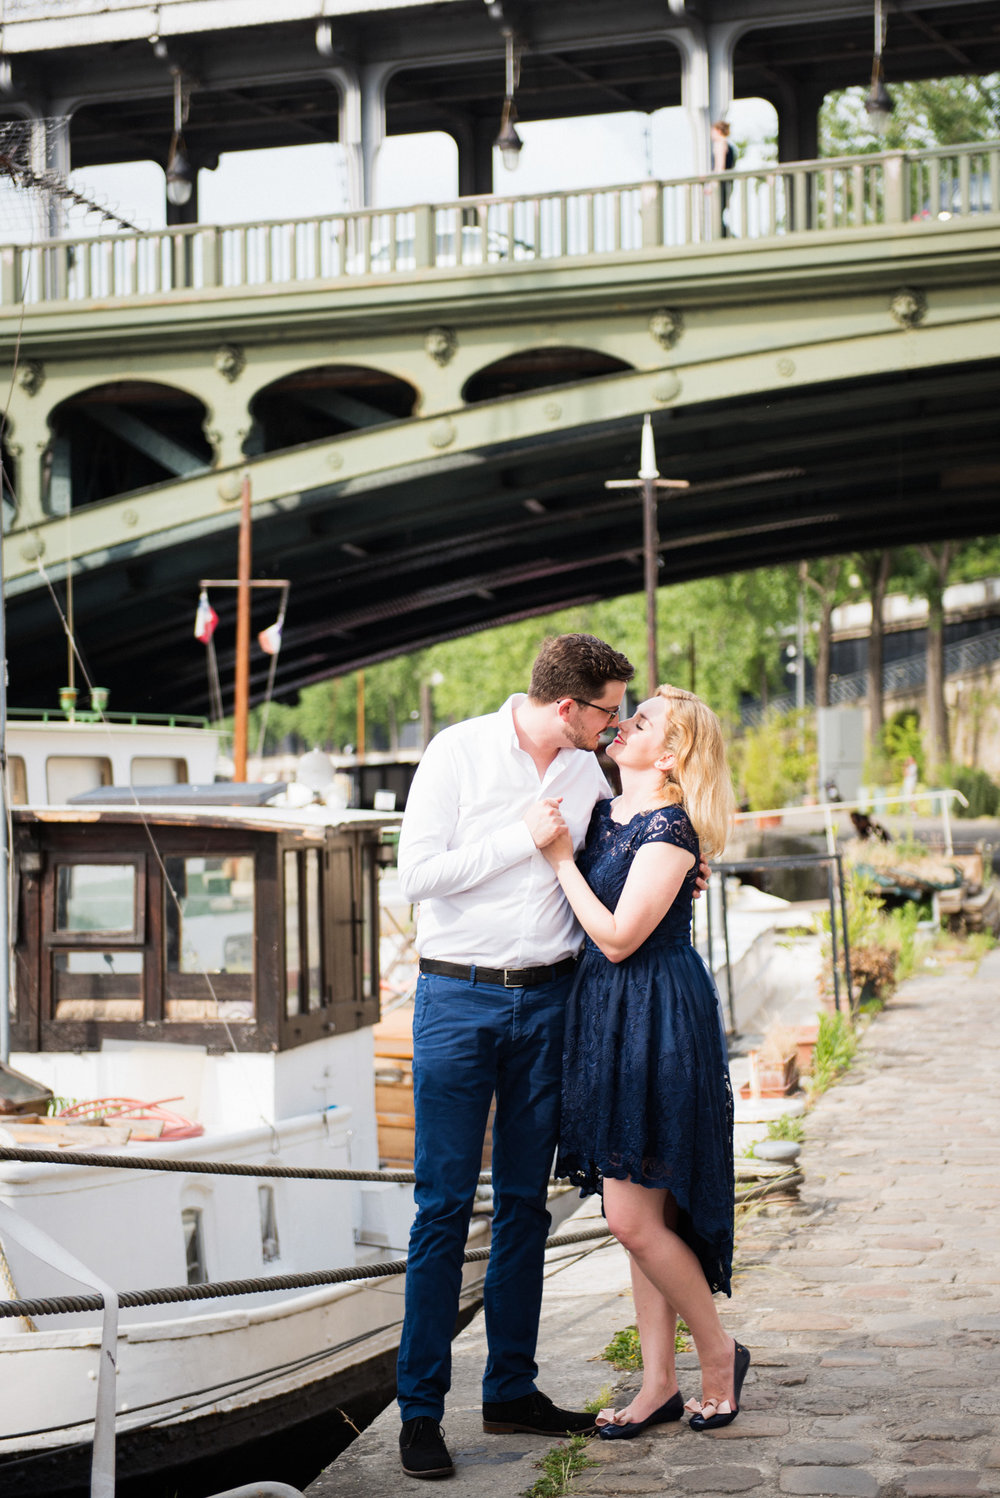 Proposal in Paris Photoshoot by Paris Photographer Shantha Delaunay.jpg